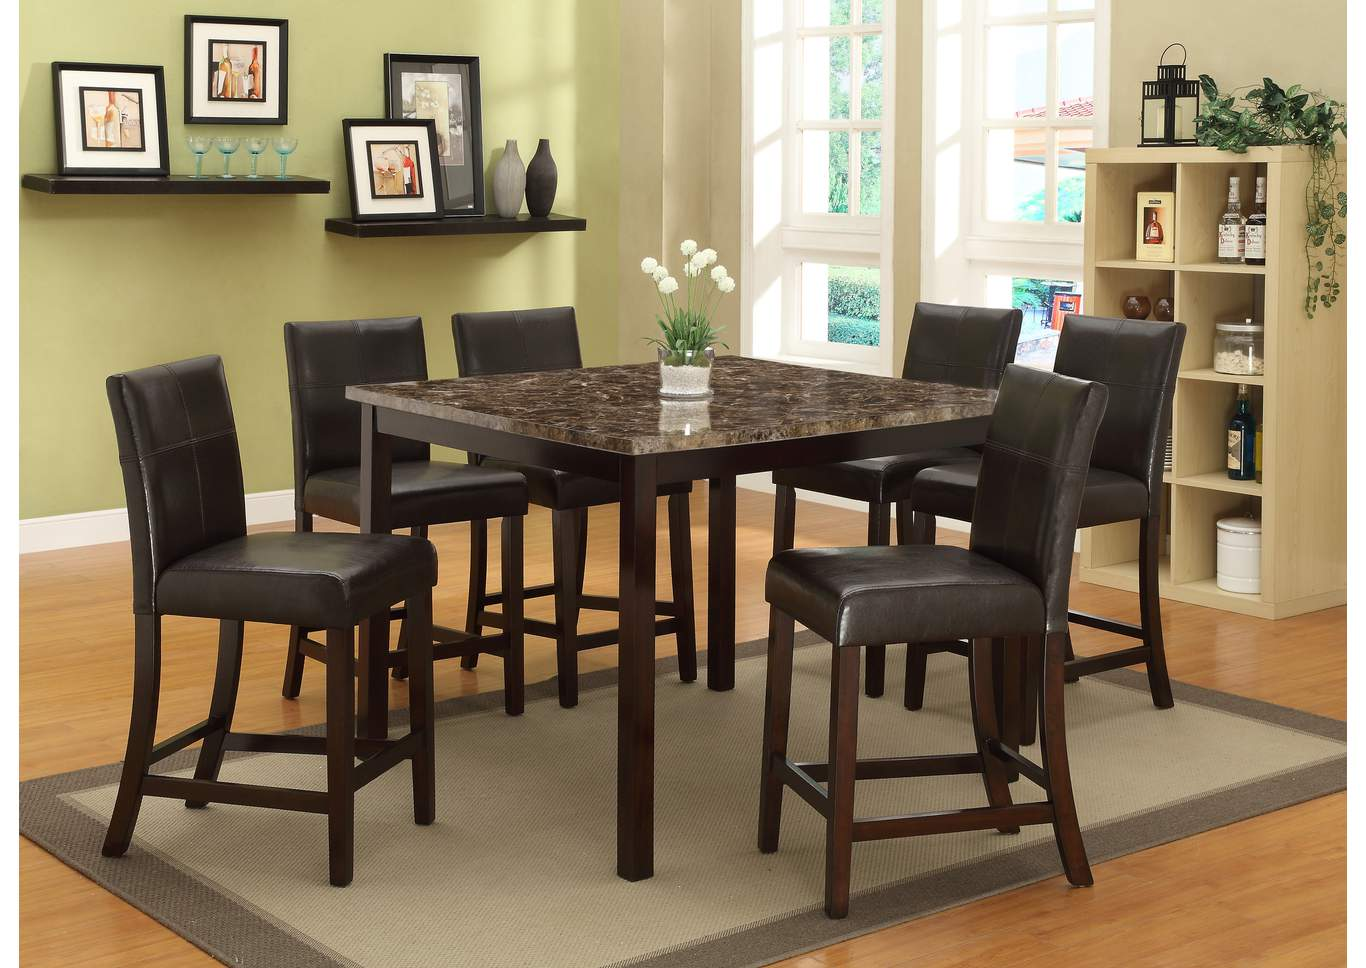 Pompeii Faux Marble Top Counter Height Table W/ 6 Side Chairs,Crown Mark